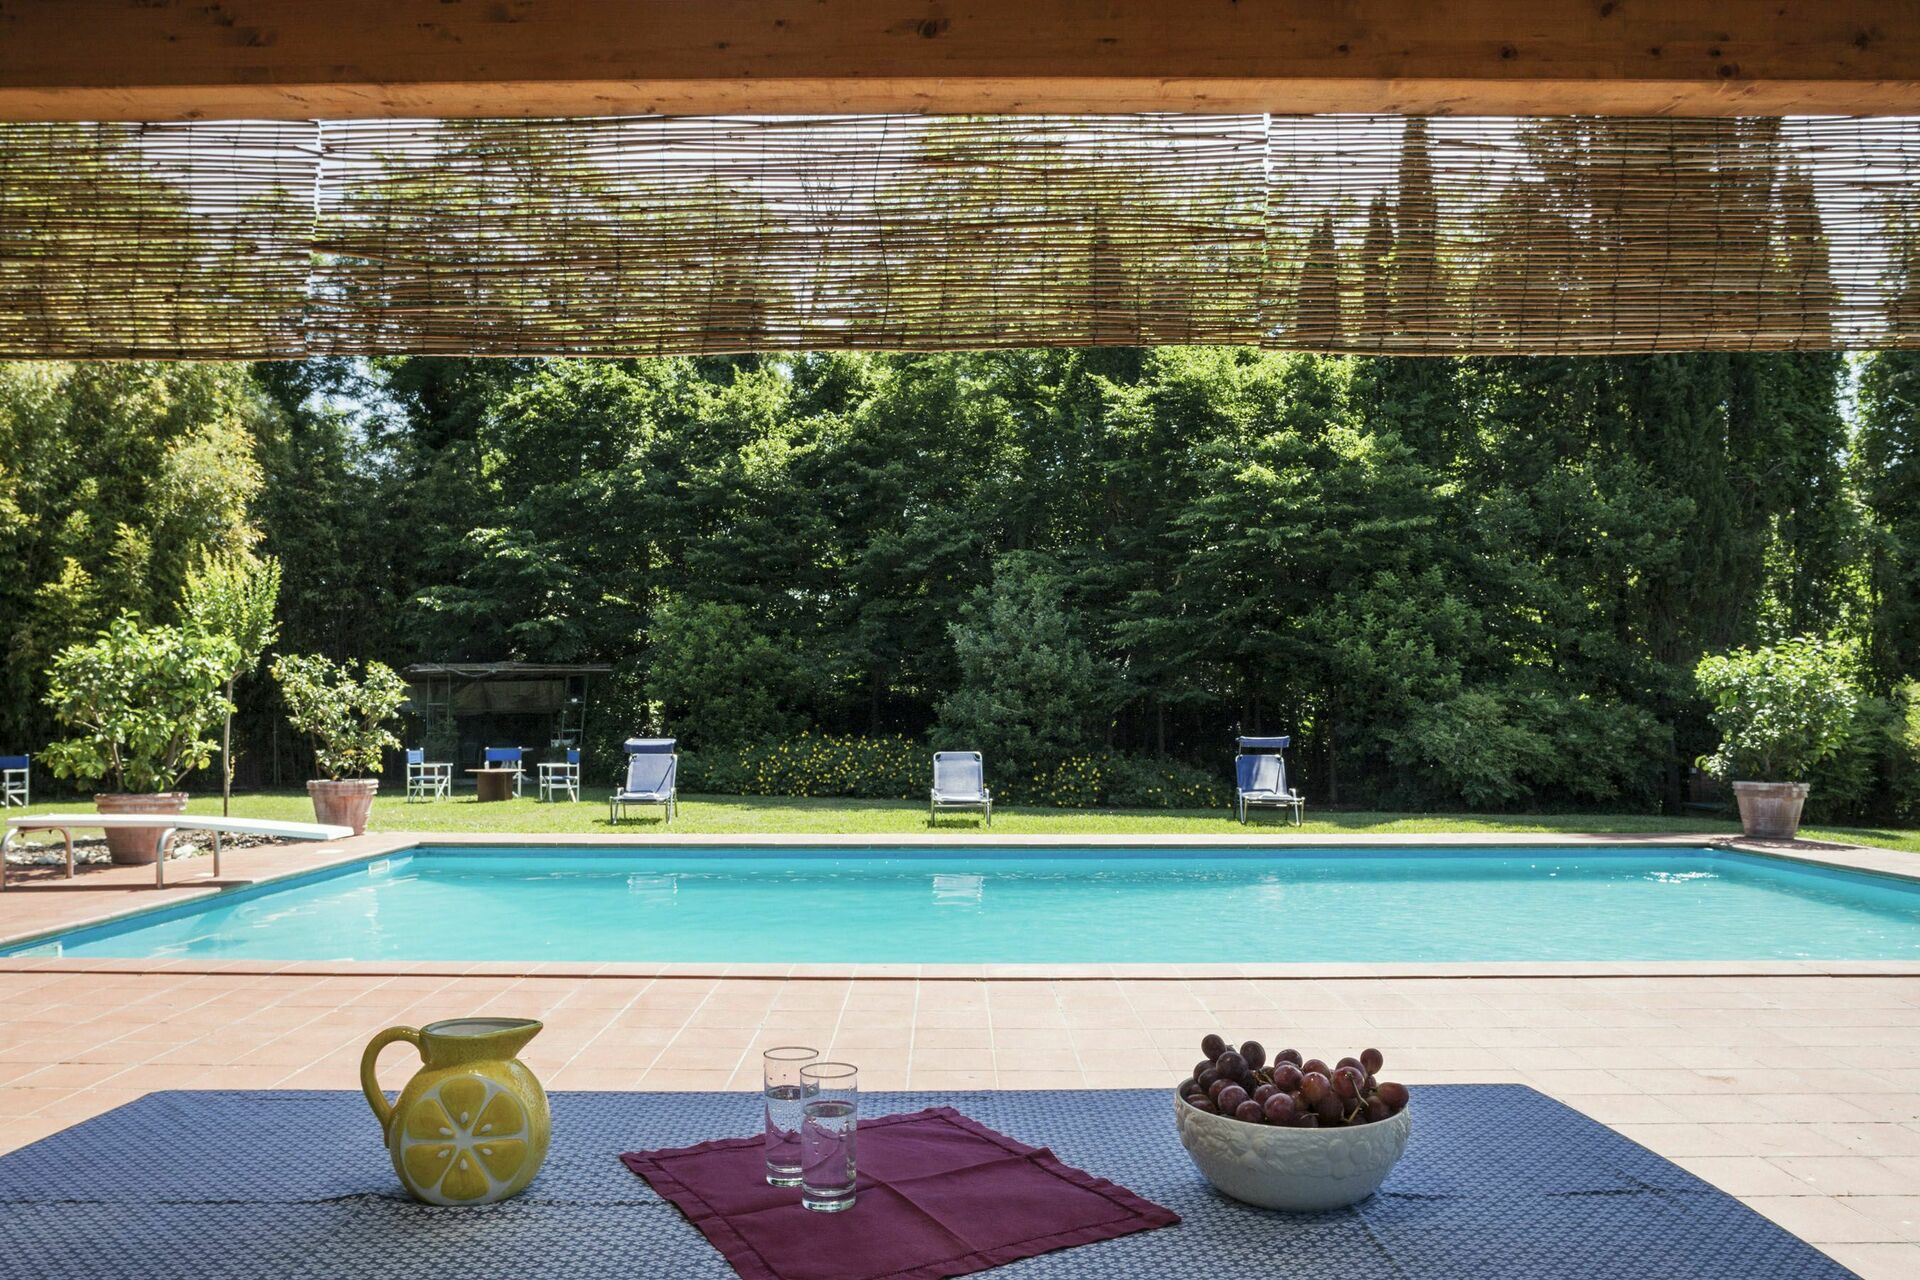 Casa luciana villa in tuscany lucca salogi villas italy - Hotels in lucca italy with swimming pool ...